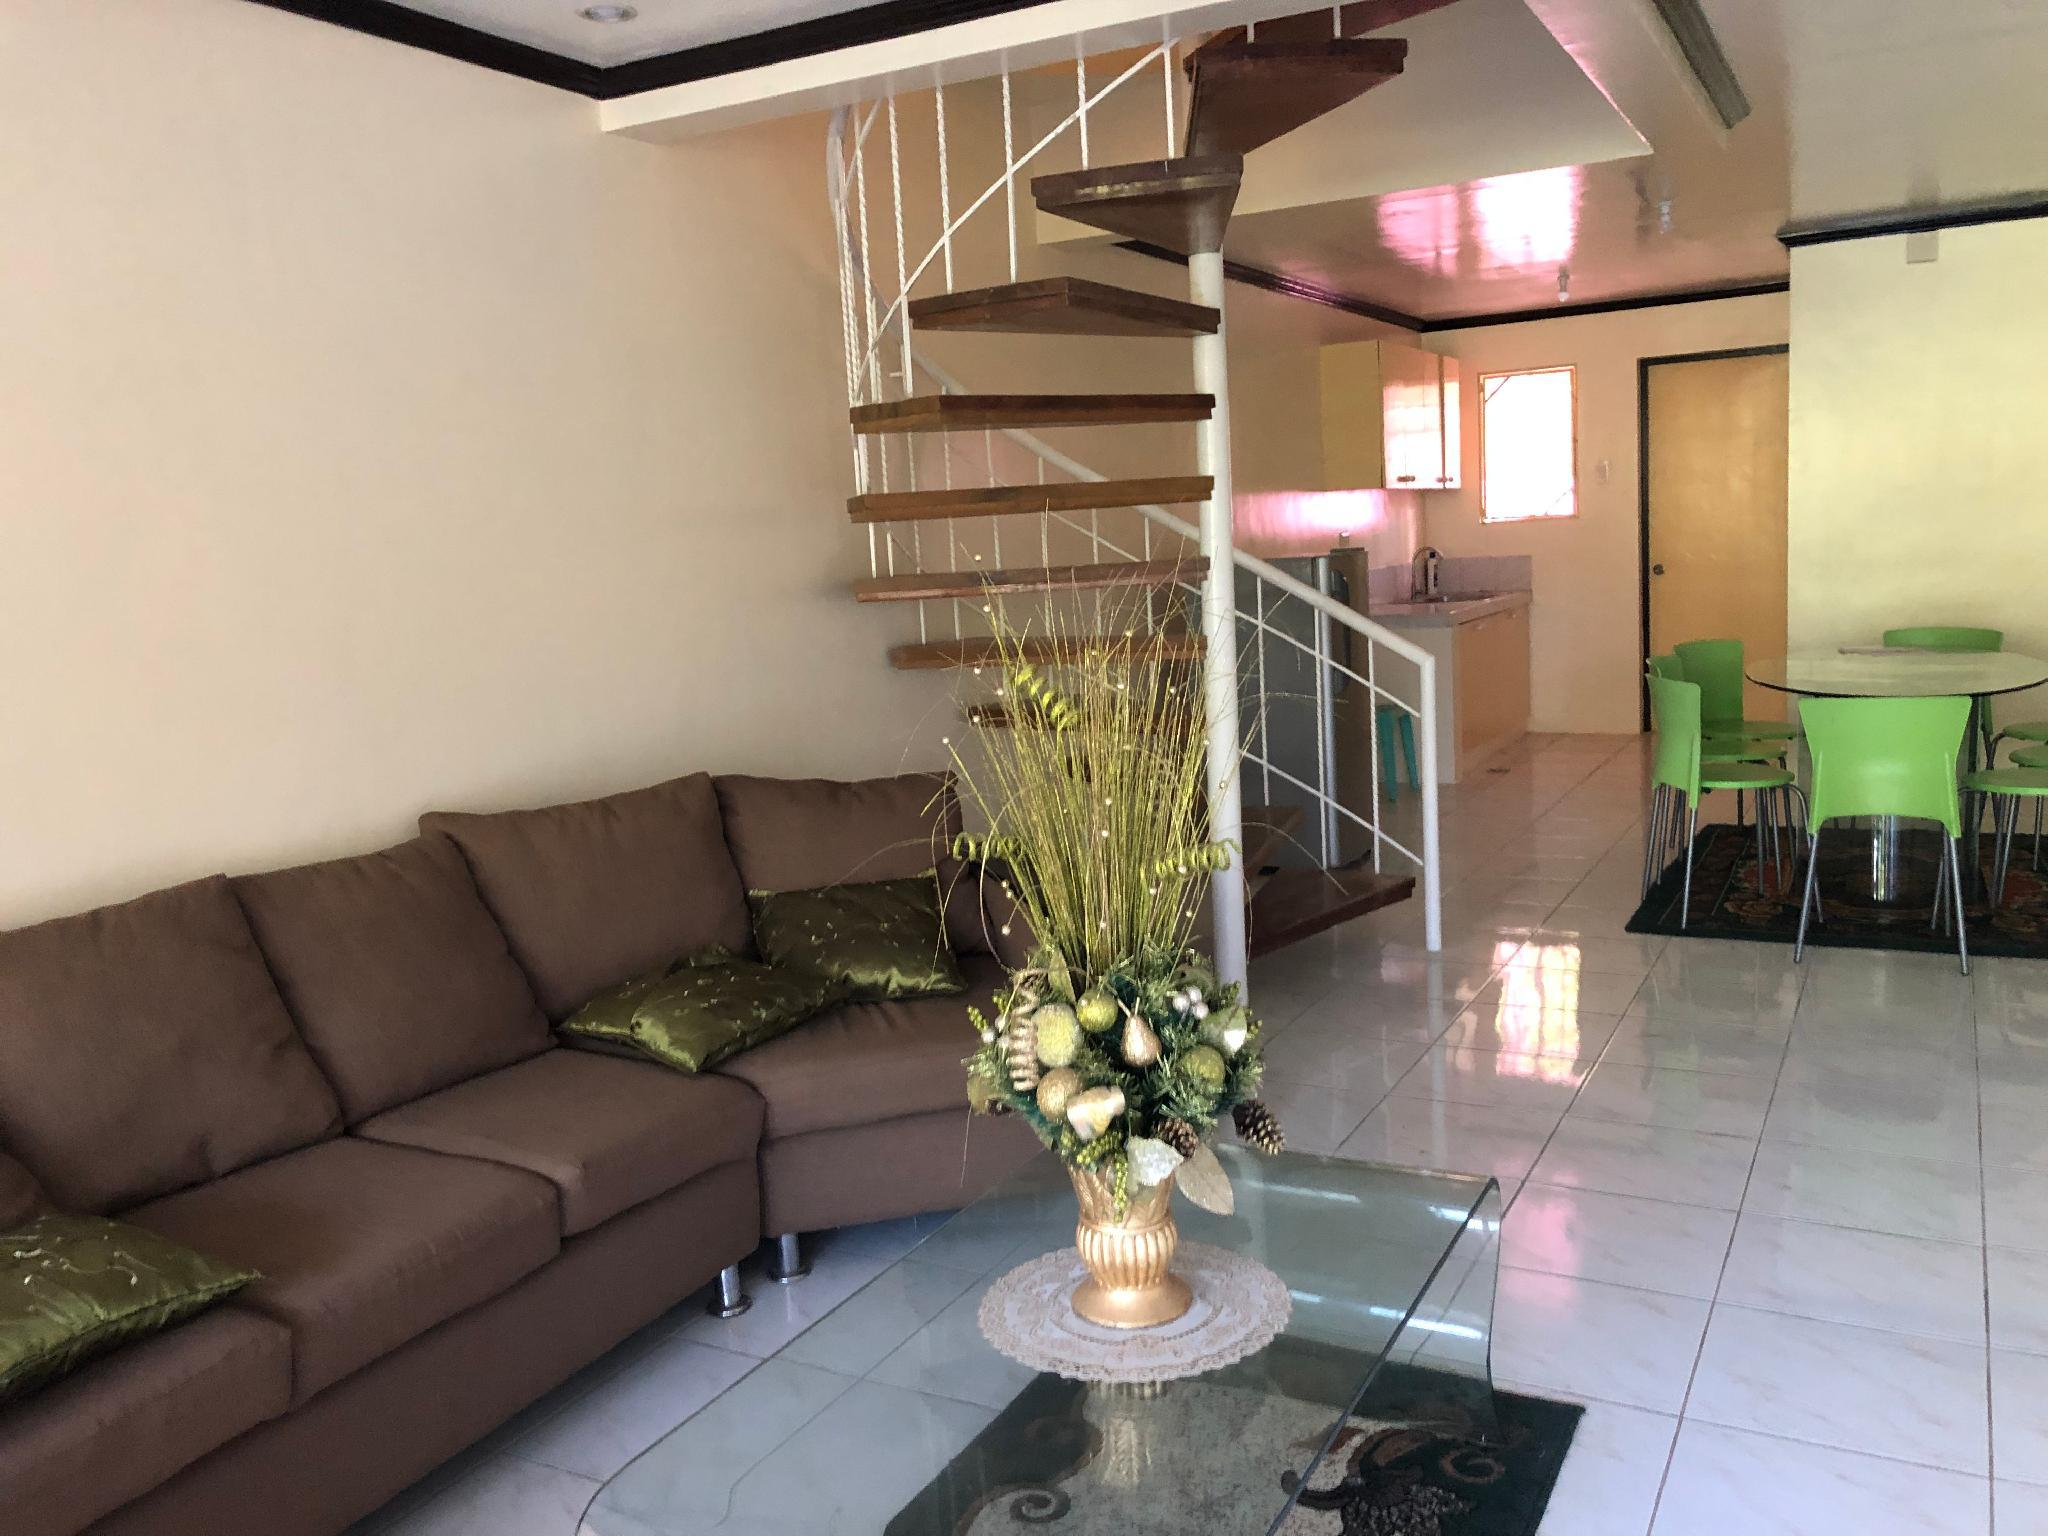 3 Room Townhouse Tagaytay